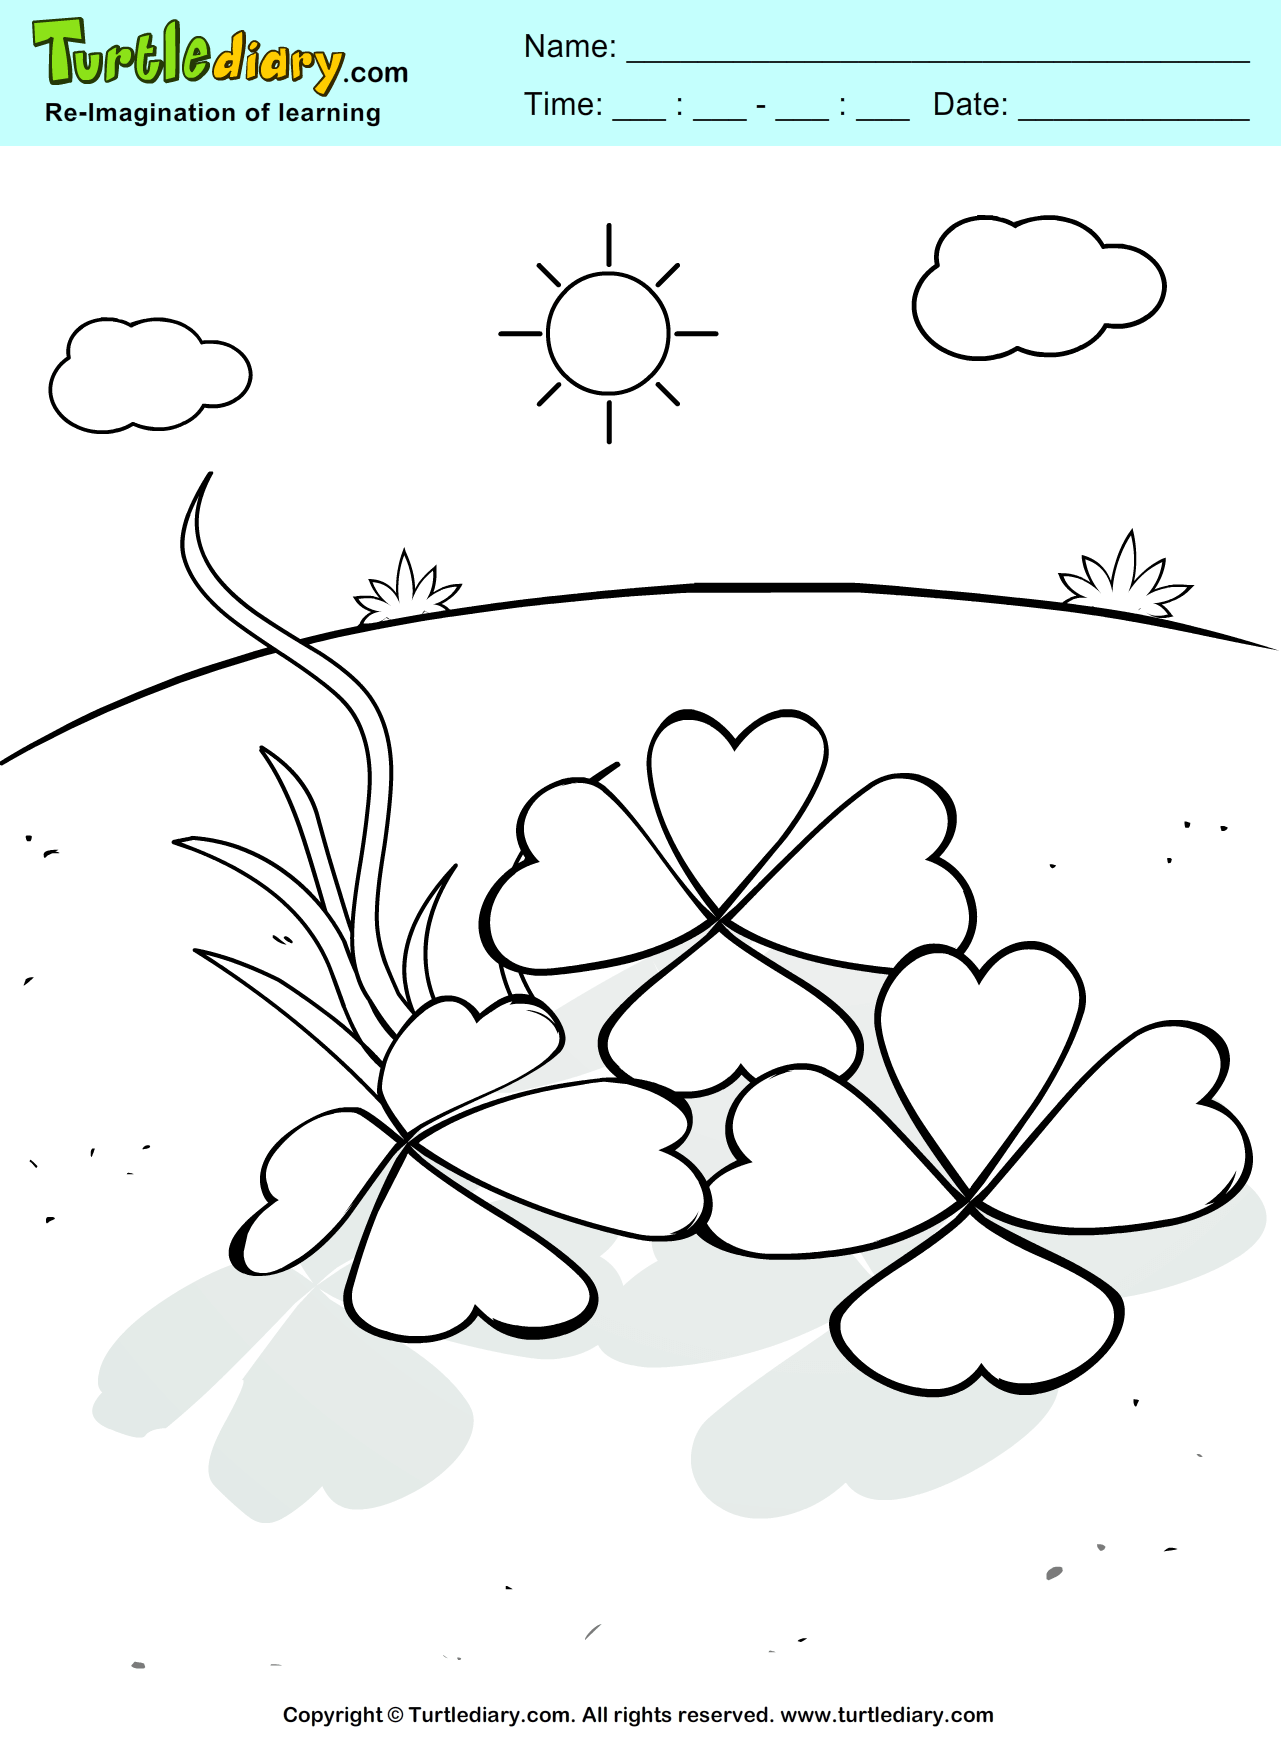 Shamrock Coloring Sheet | Turtle Diary